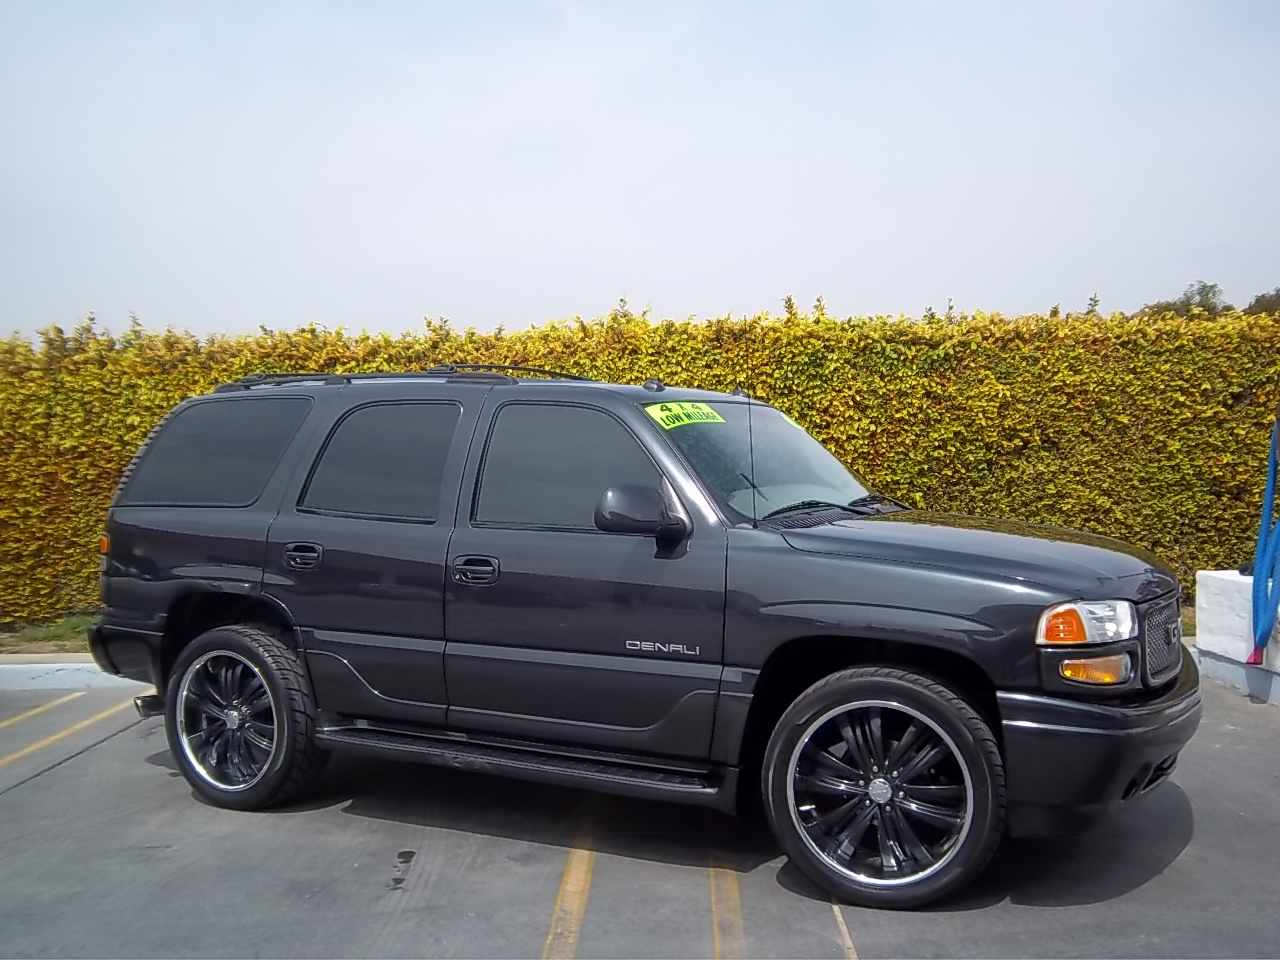 Picture of 2003 GMC Yukon XL 4 Dr Denali AWD SUV